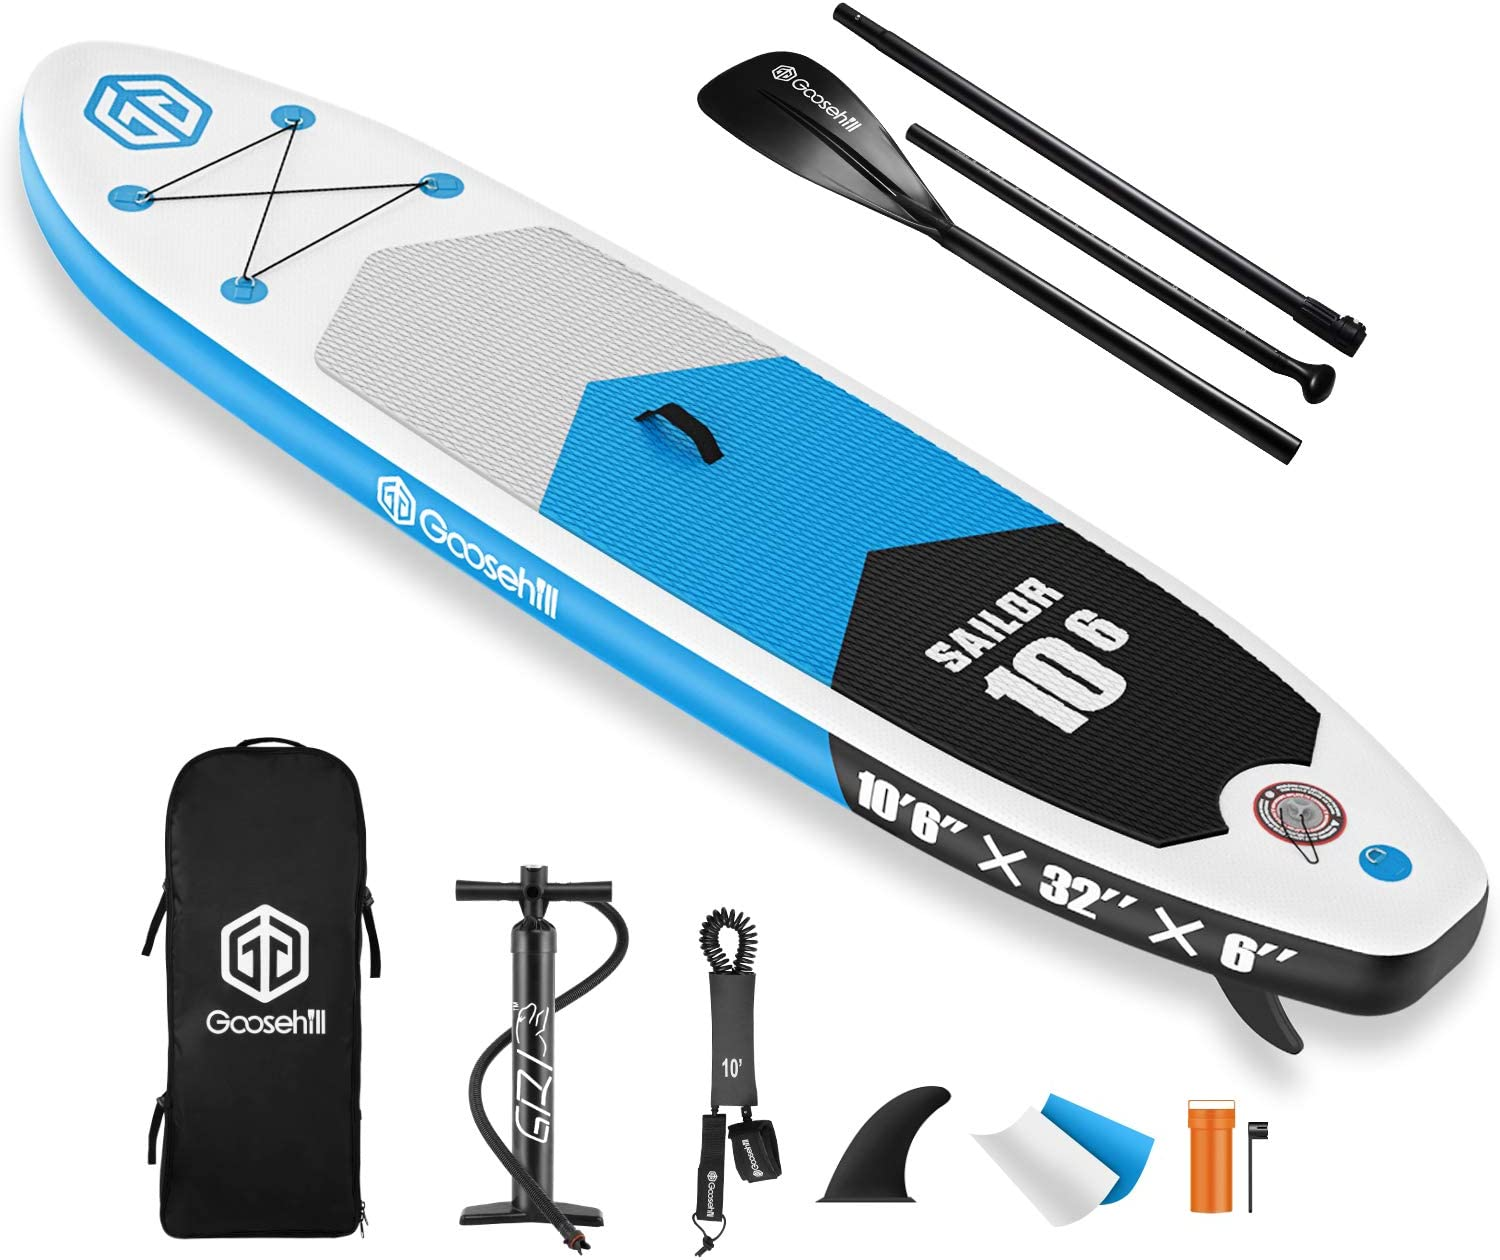 Goosehill Inflatable Stand 5 popular Up Paddle SUP Package Board Ranking TOP16 Premium